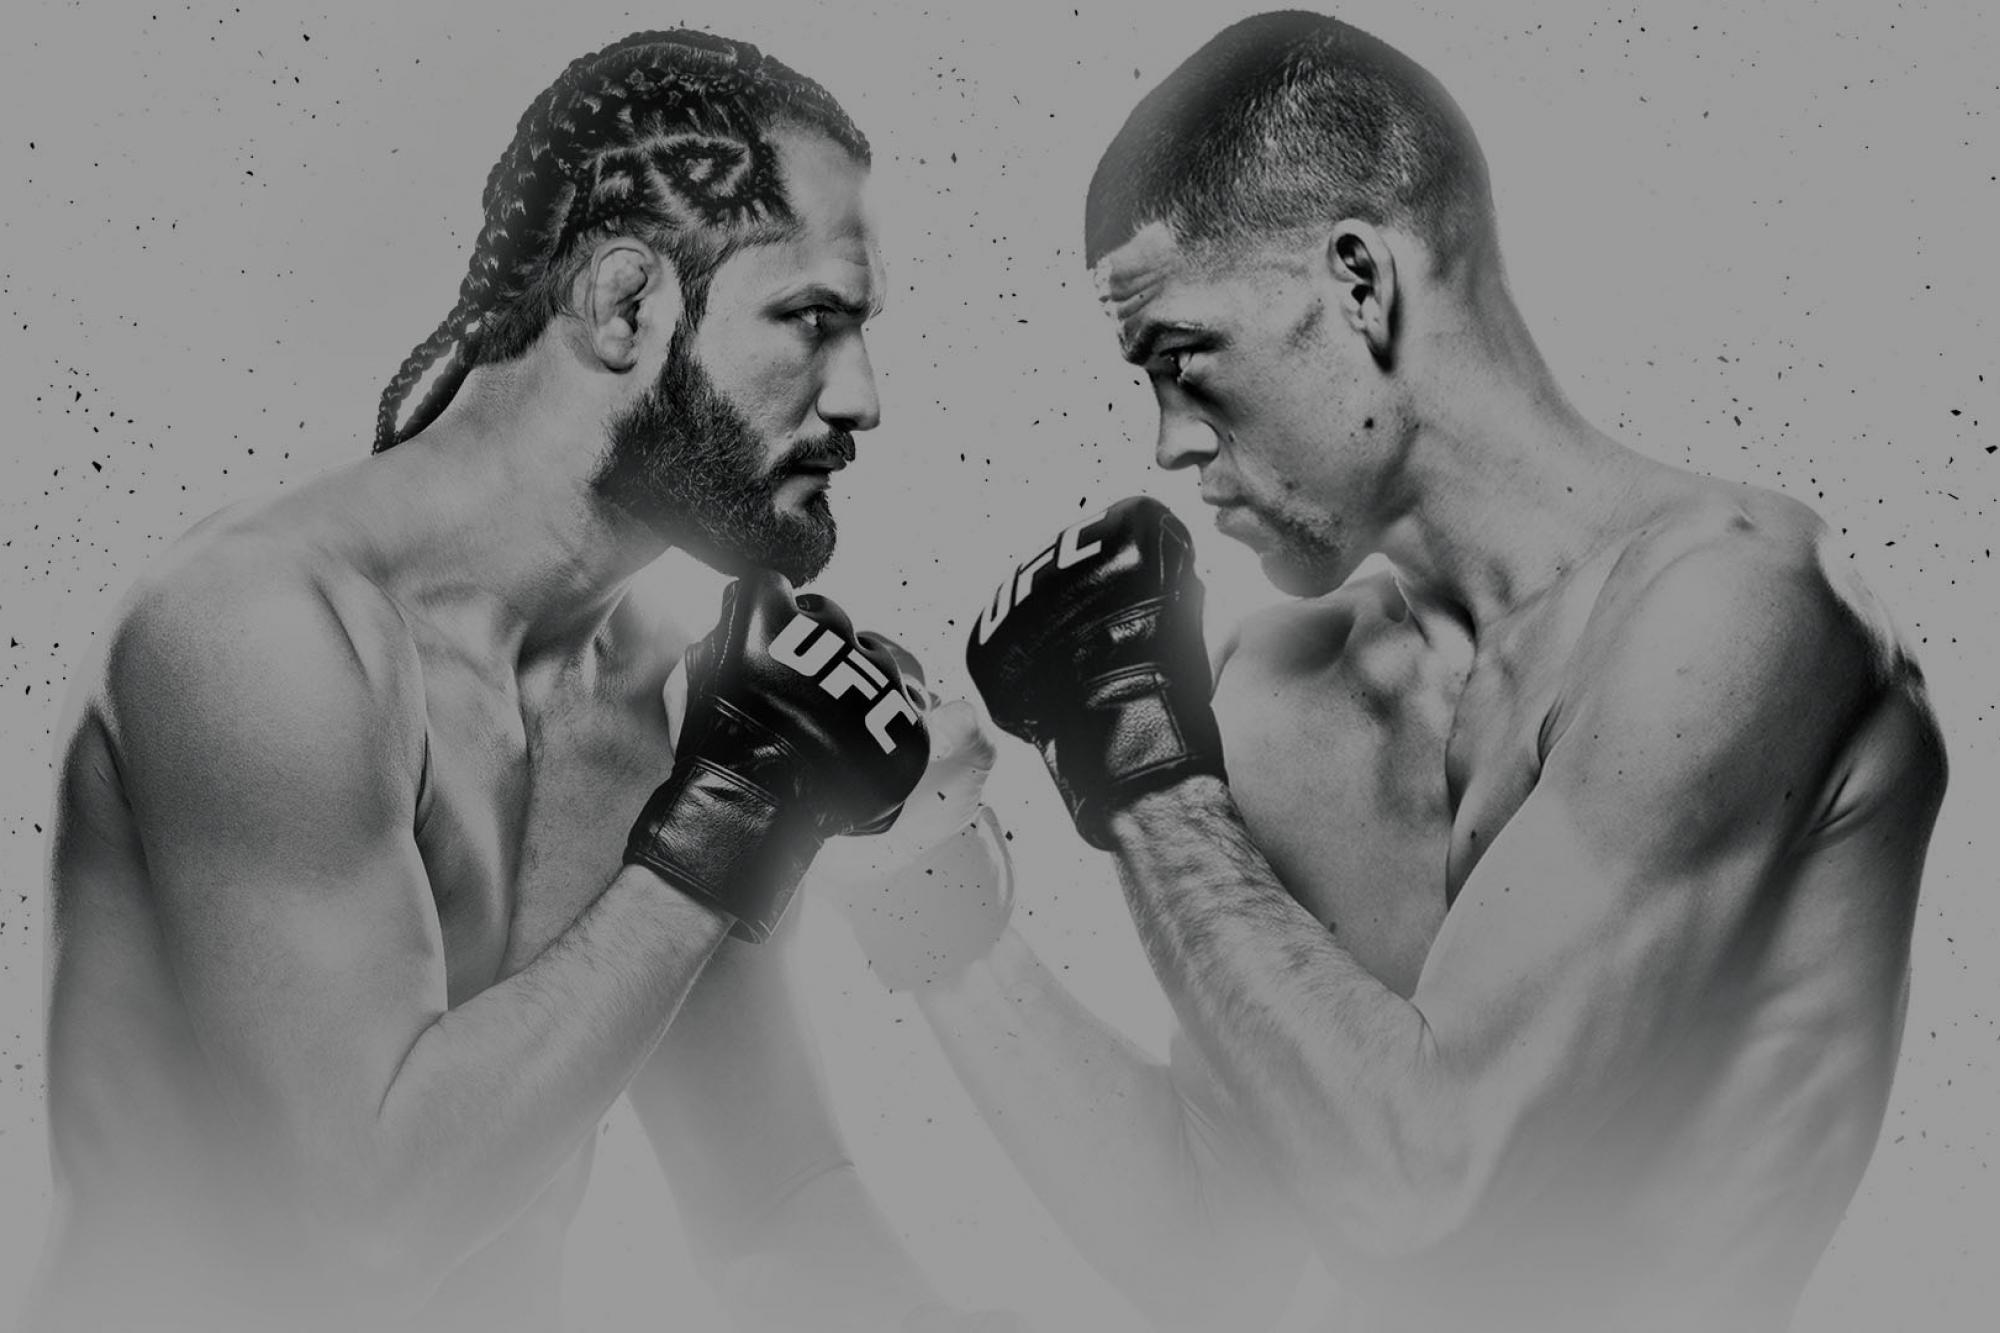 UFC 244 – Jorge Masvidal vs. Nate Diaz: Fight card, Overview, Picks & Predictions